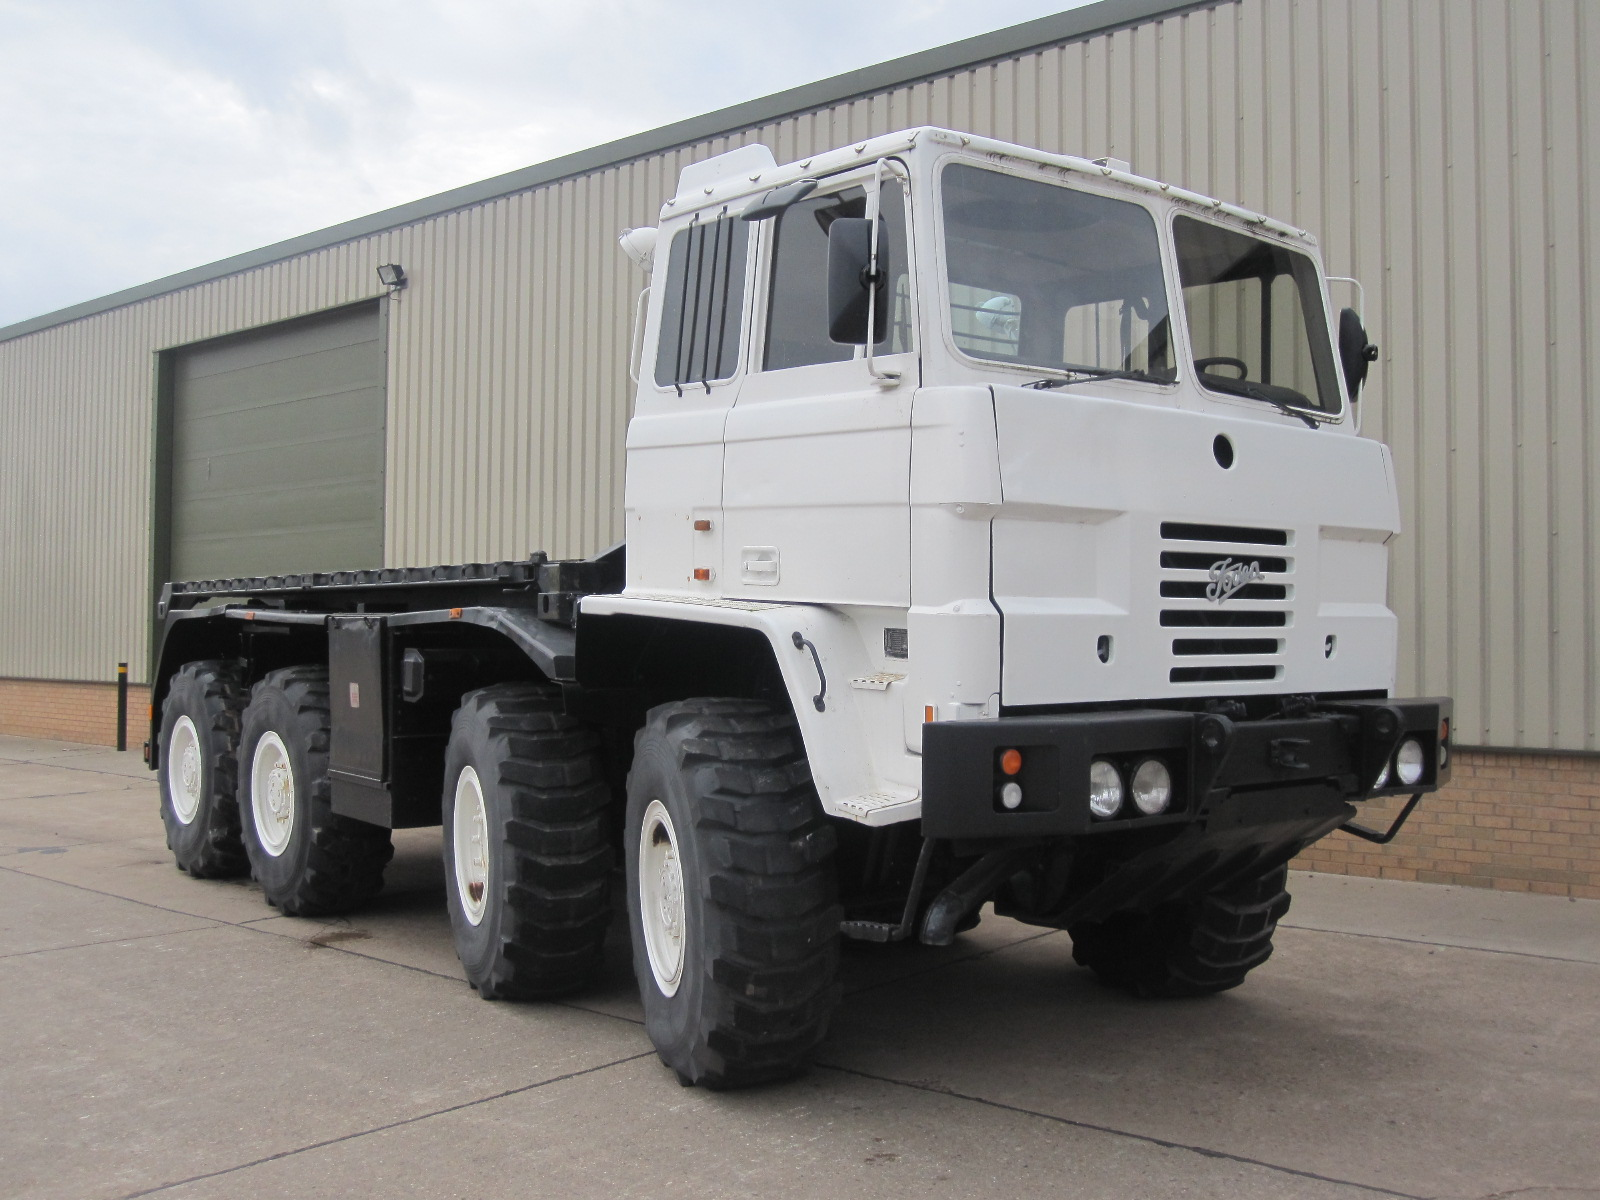 Foden 8x6 DROPS truck with multilift